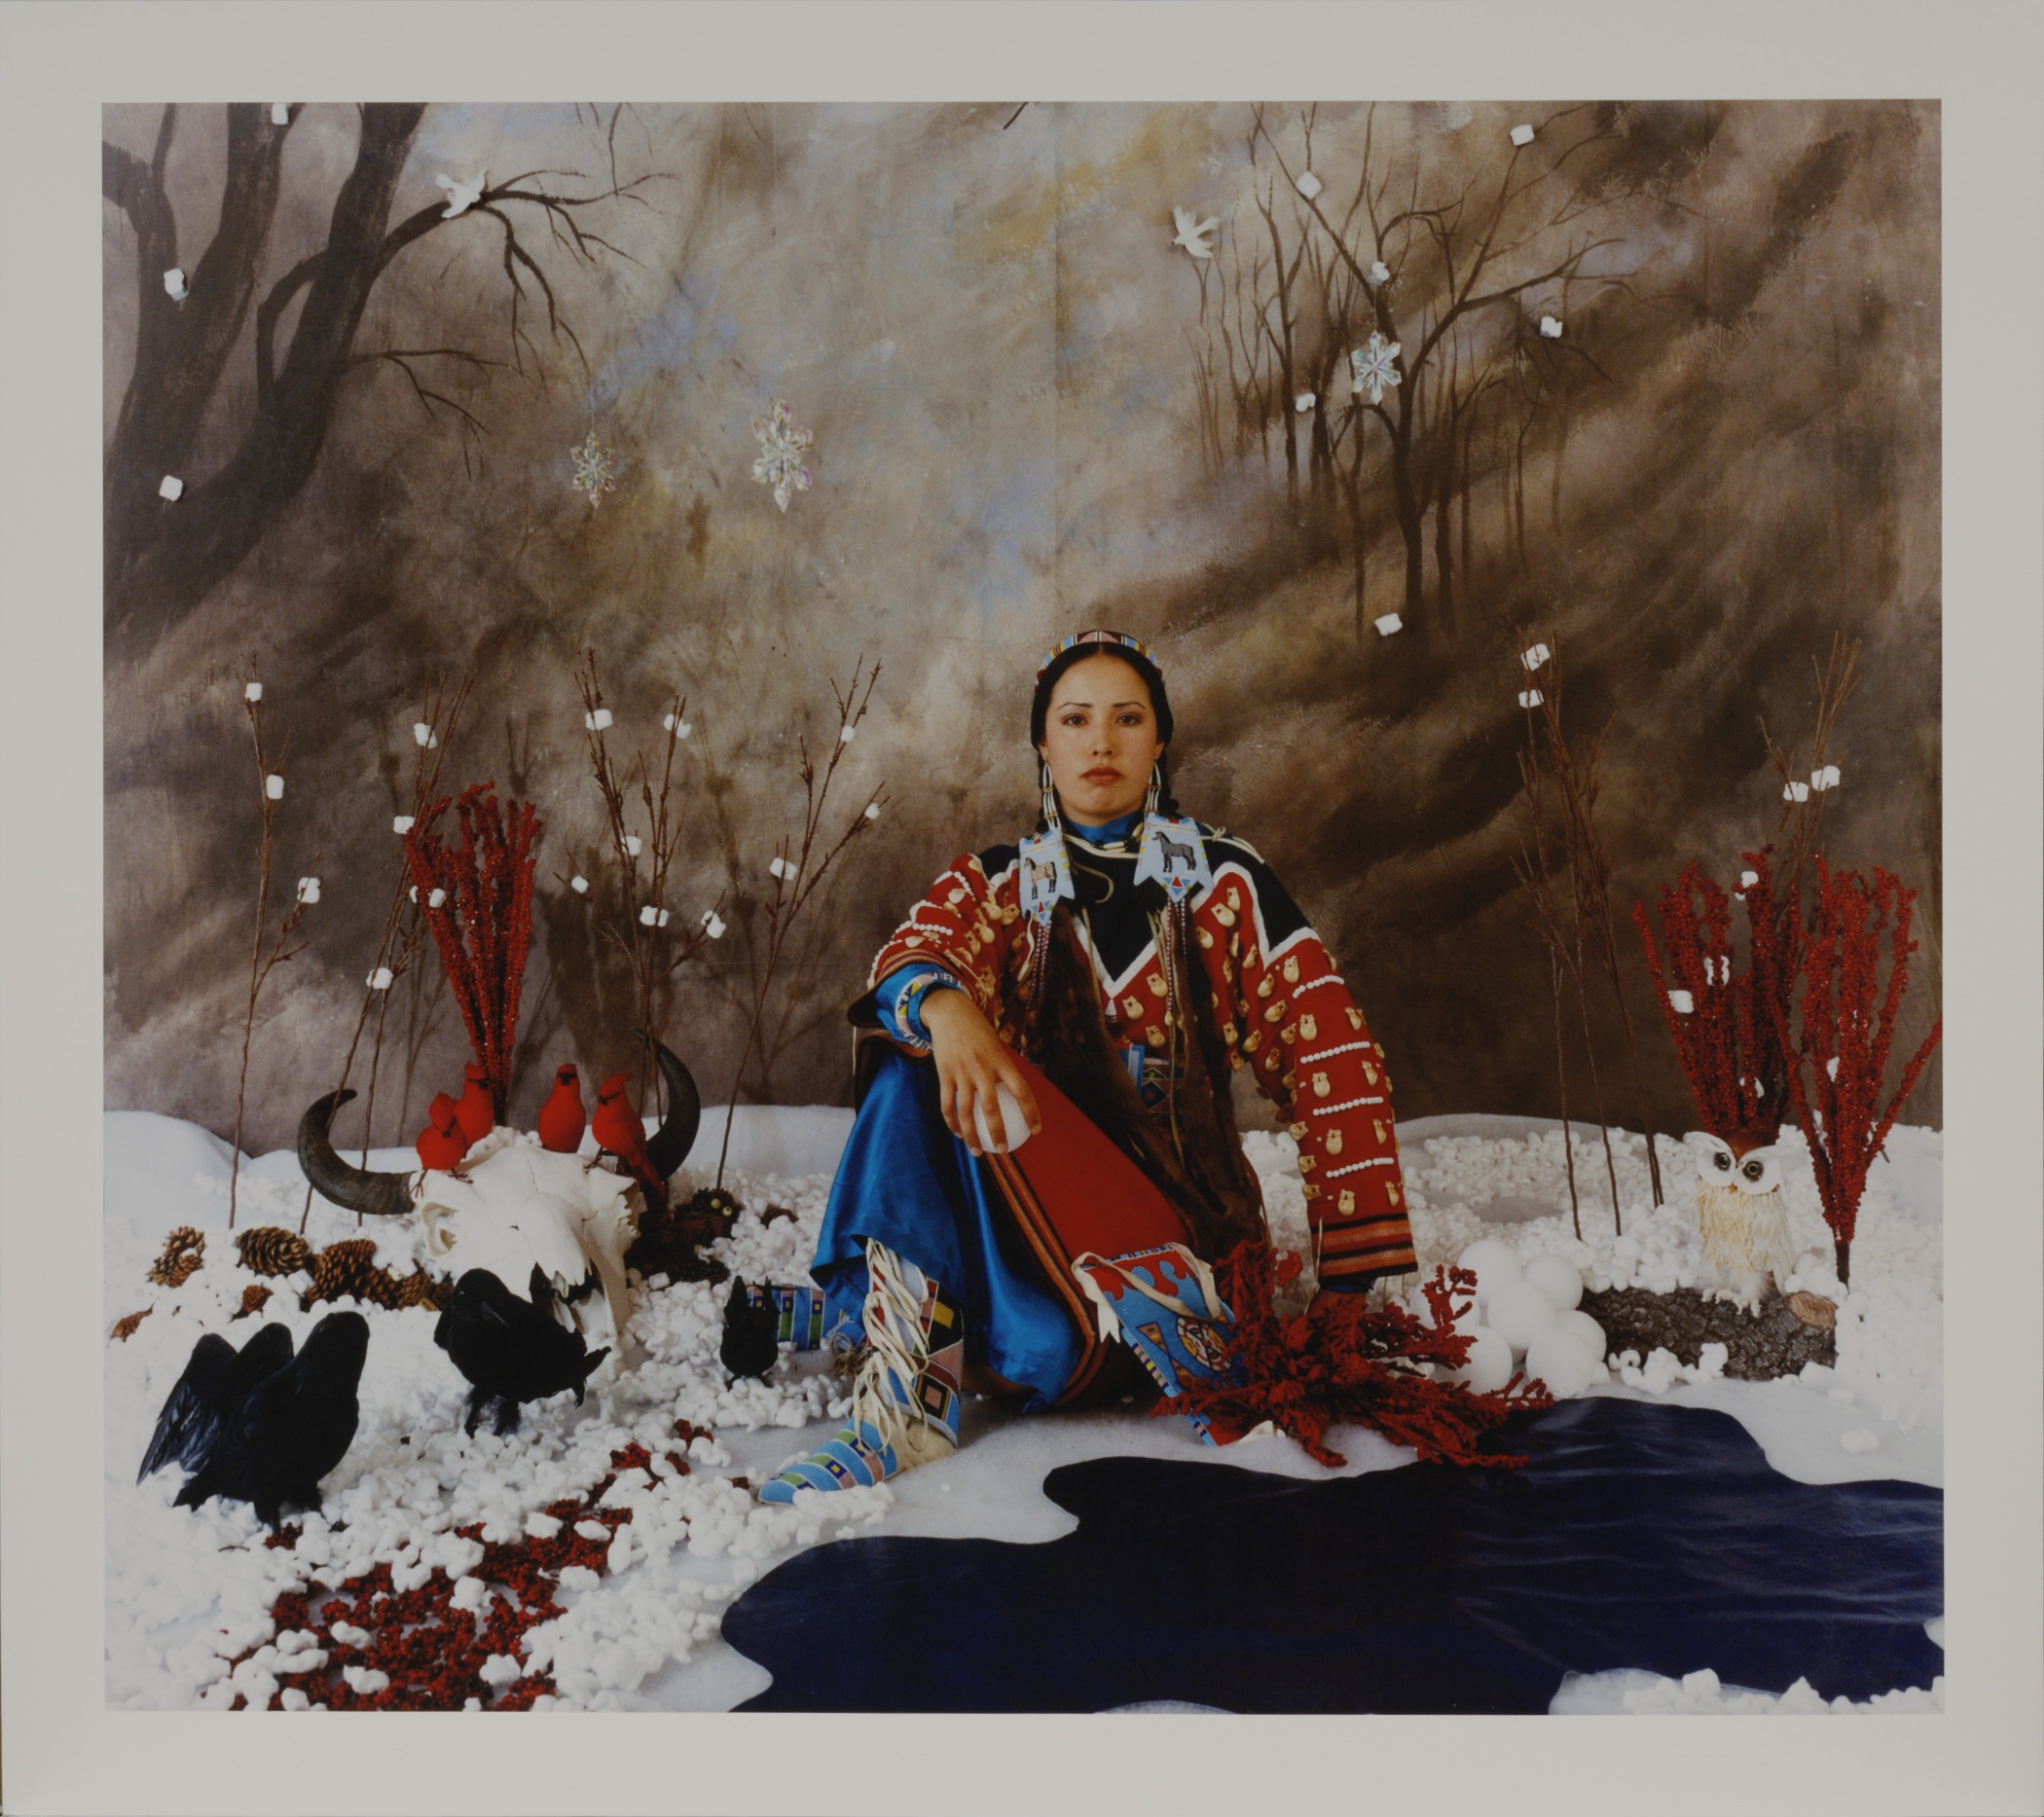 Wendy Red Star,  Winter , from  The Four Seasons  series, negative 2006; print July 1, 2014